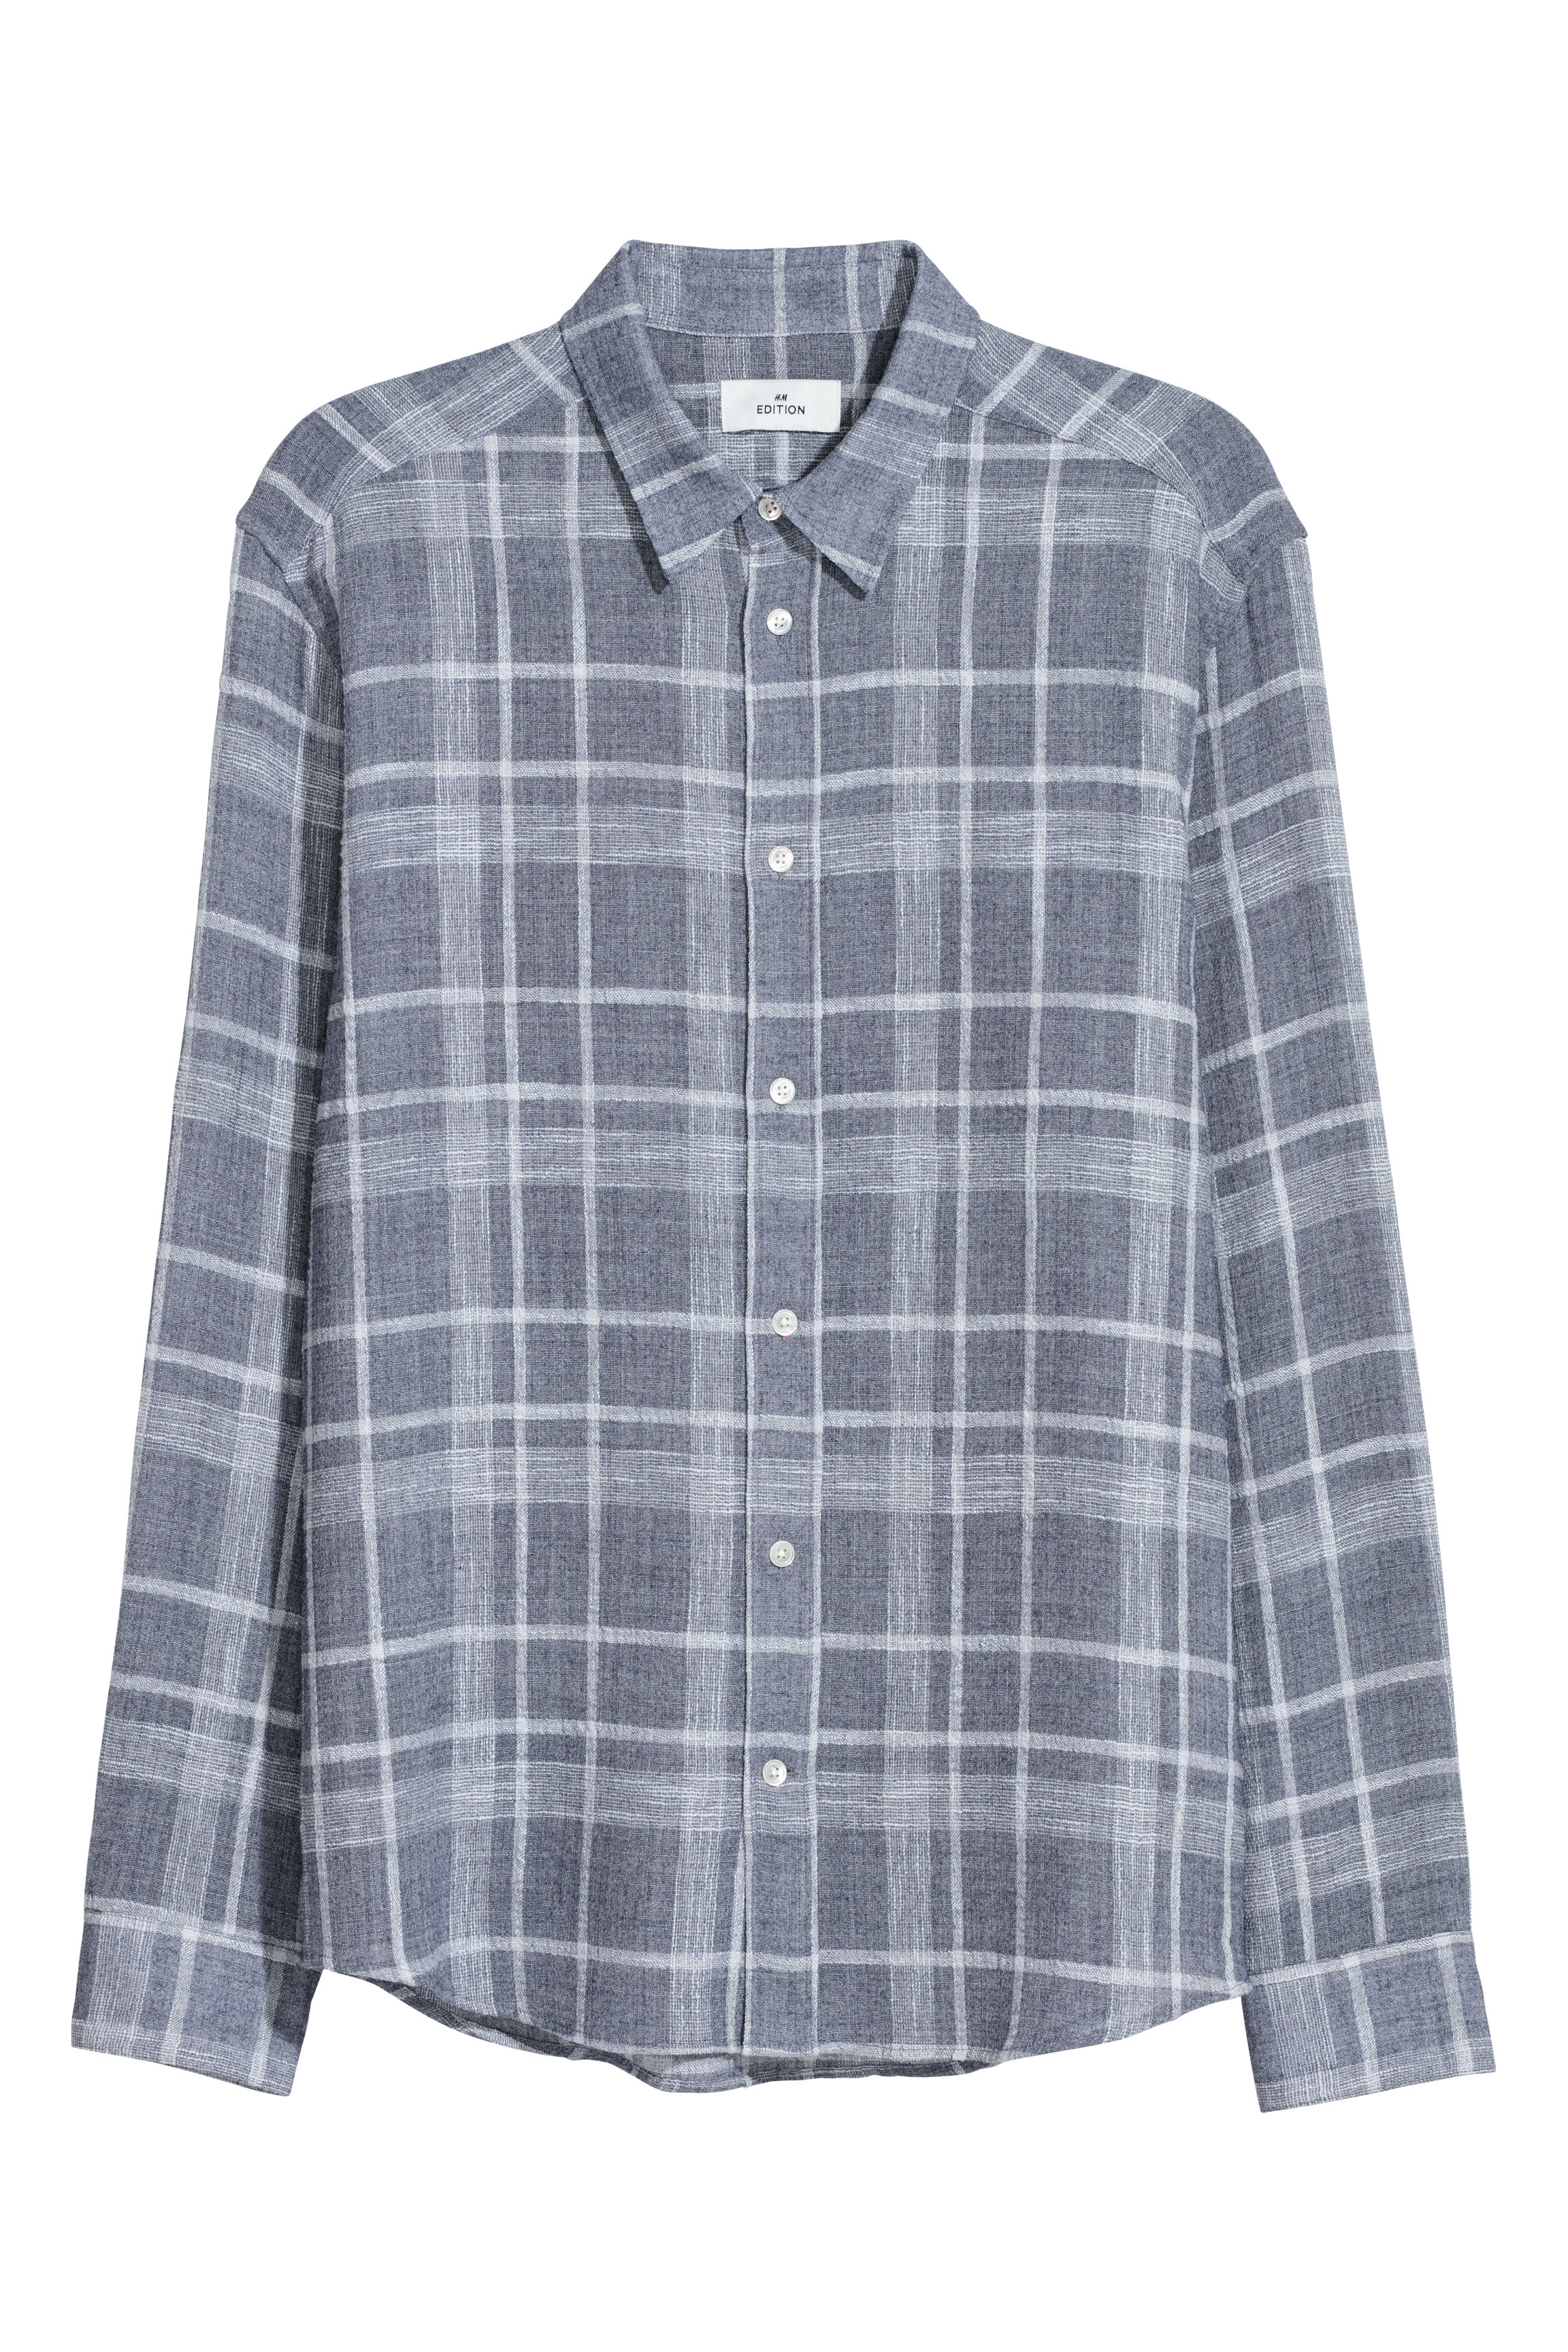 H&M Edition Light blue/White checked Cotton blend shirt